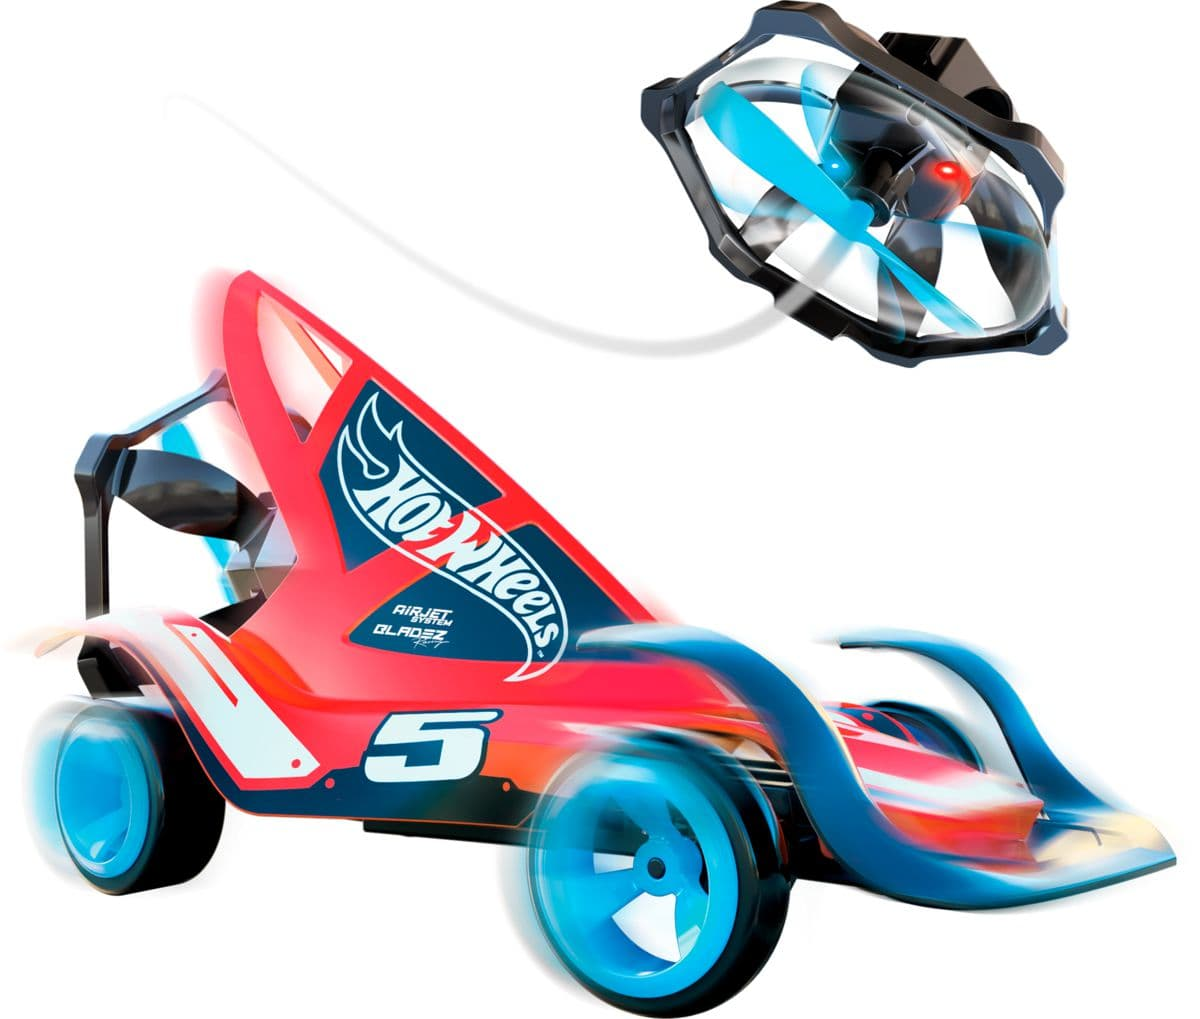 Dragon Speeder Hot Wheels